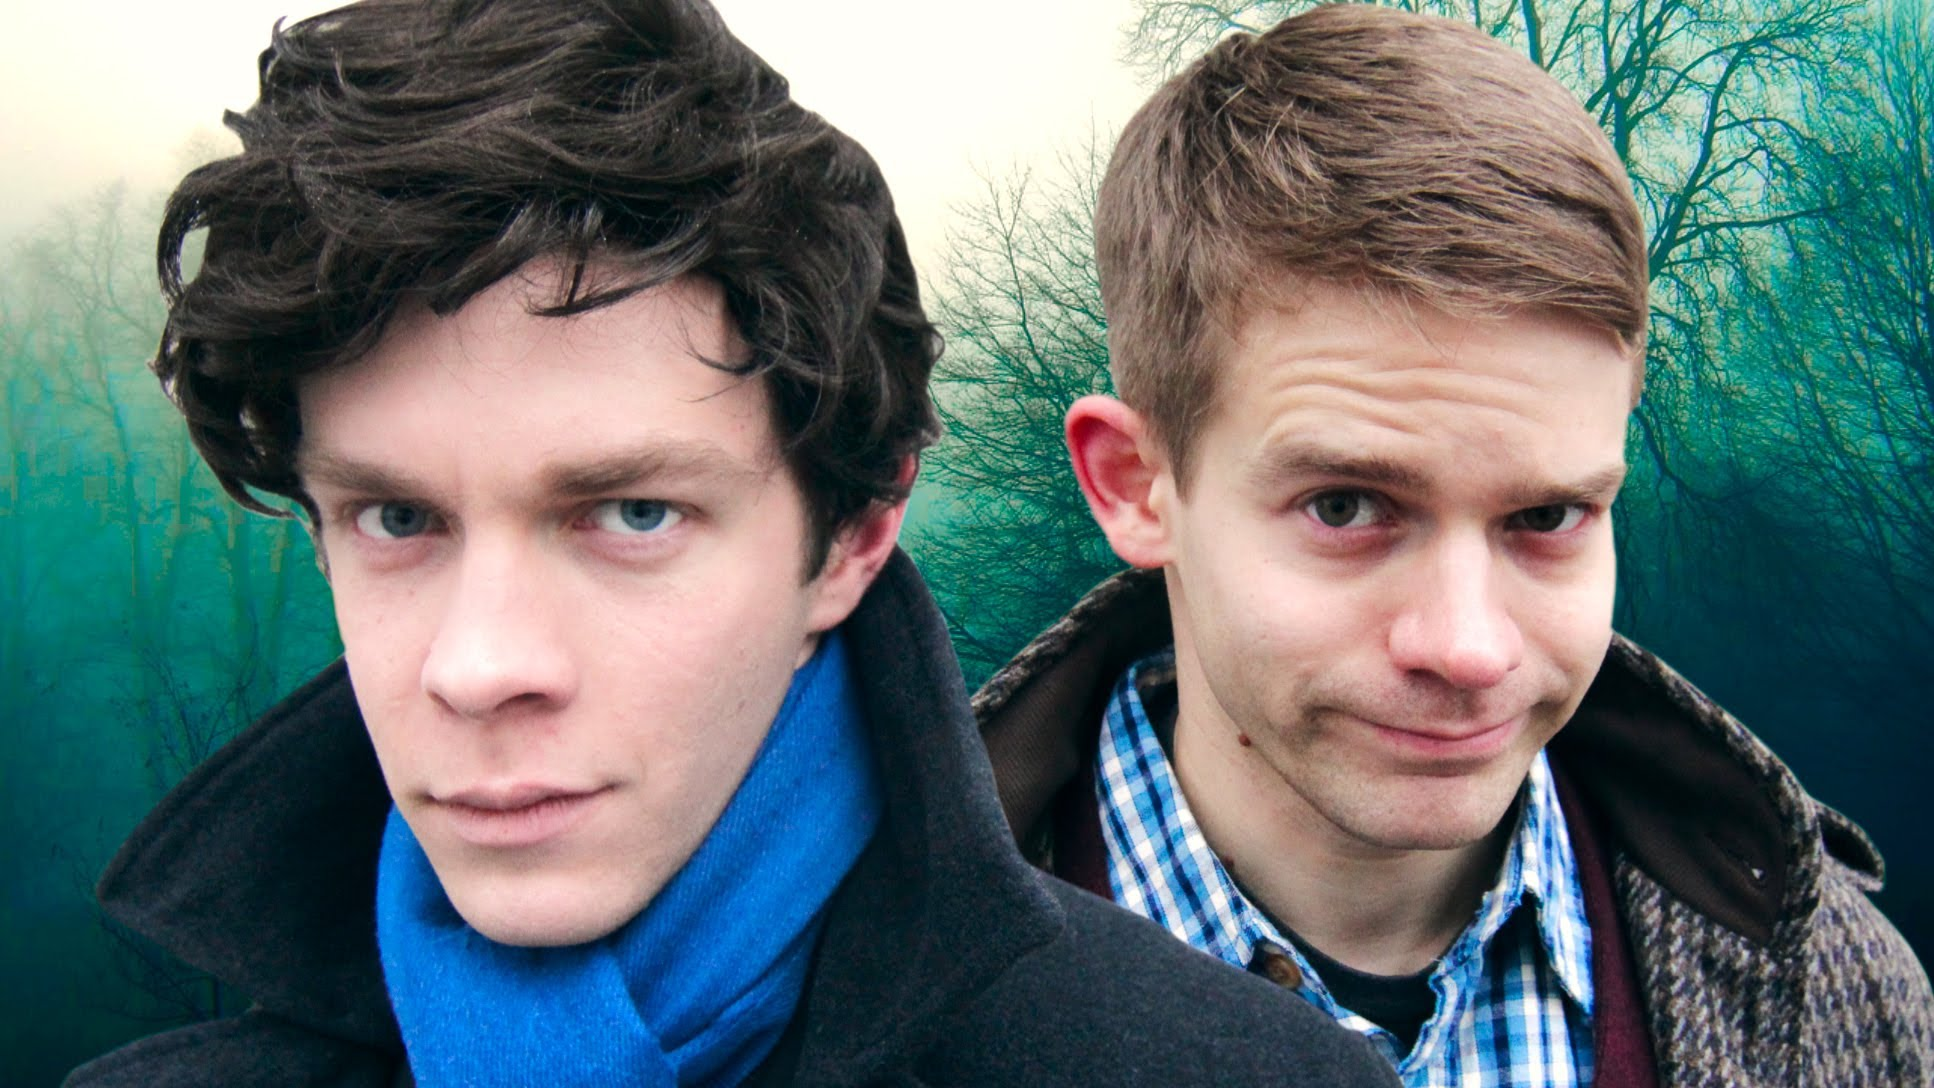 Travis Kent and Andrew Keenan-Bolger as Sherlock and Watson. (AVbytes)